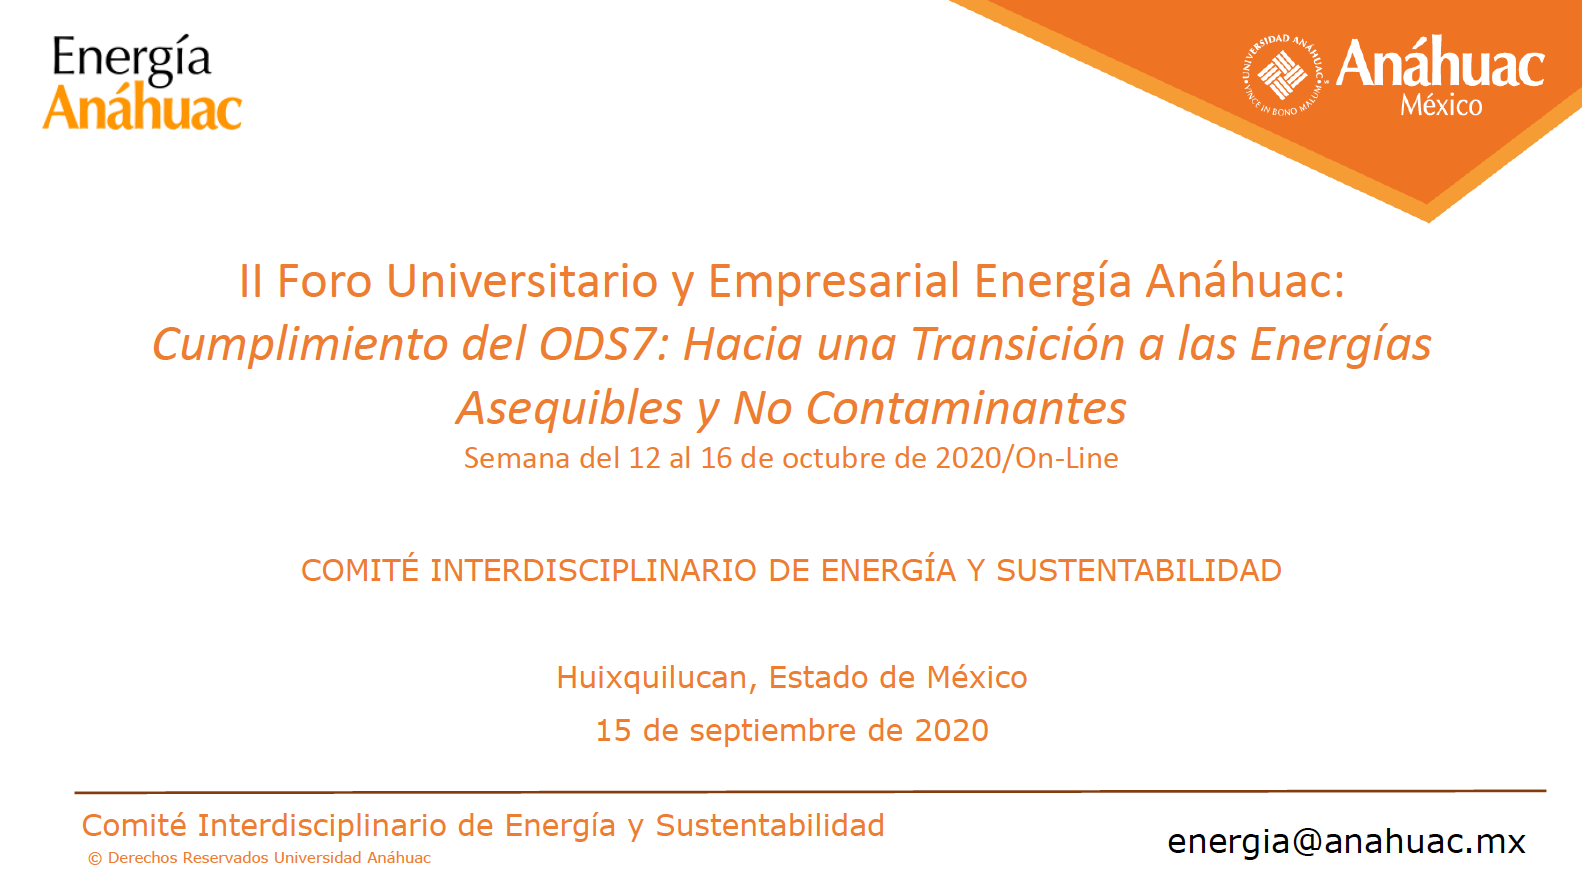 Gexcon to Present at Anáhuac University Mexico's Business and Energy Forum 2020